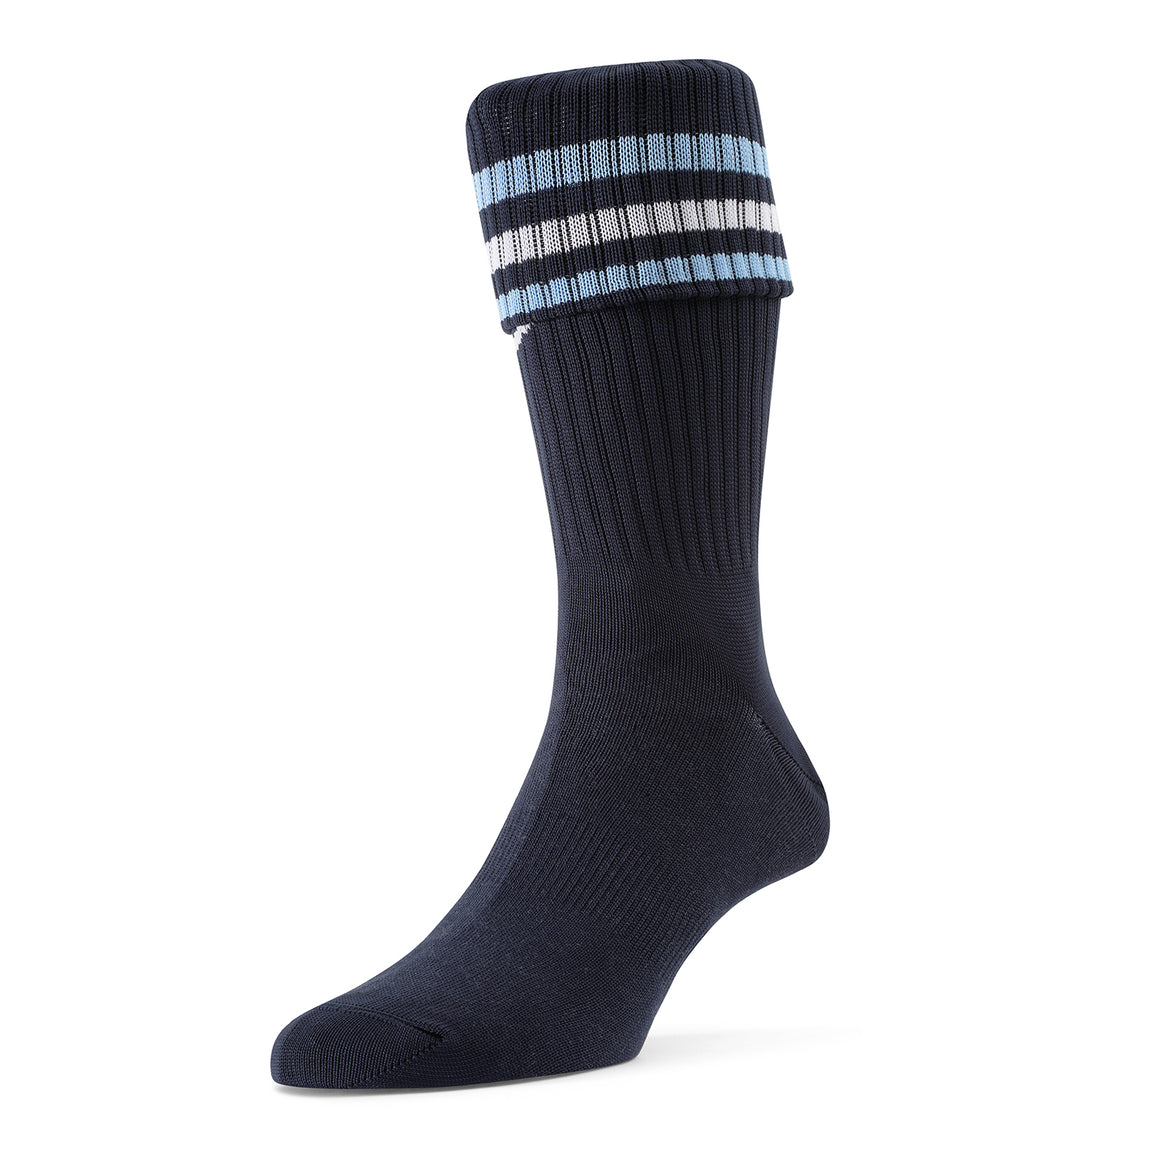 Replica Home Socks Adult 19/20